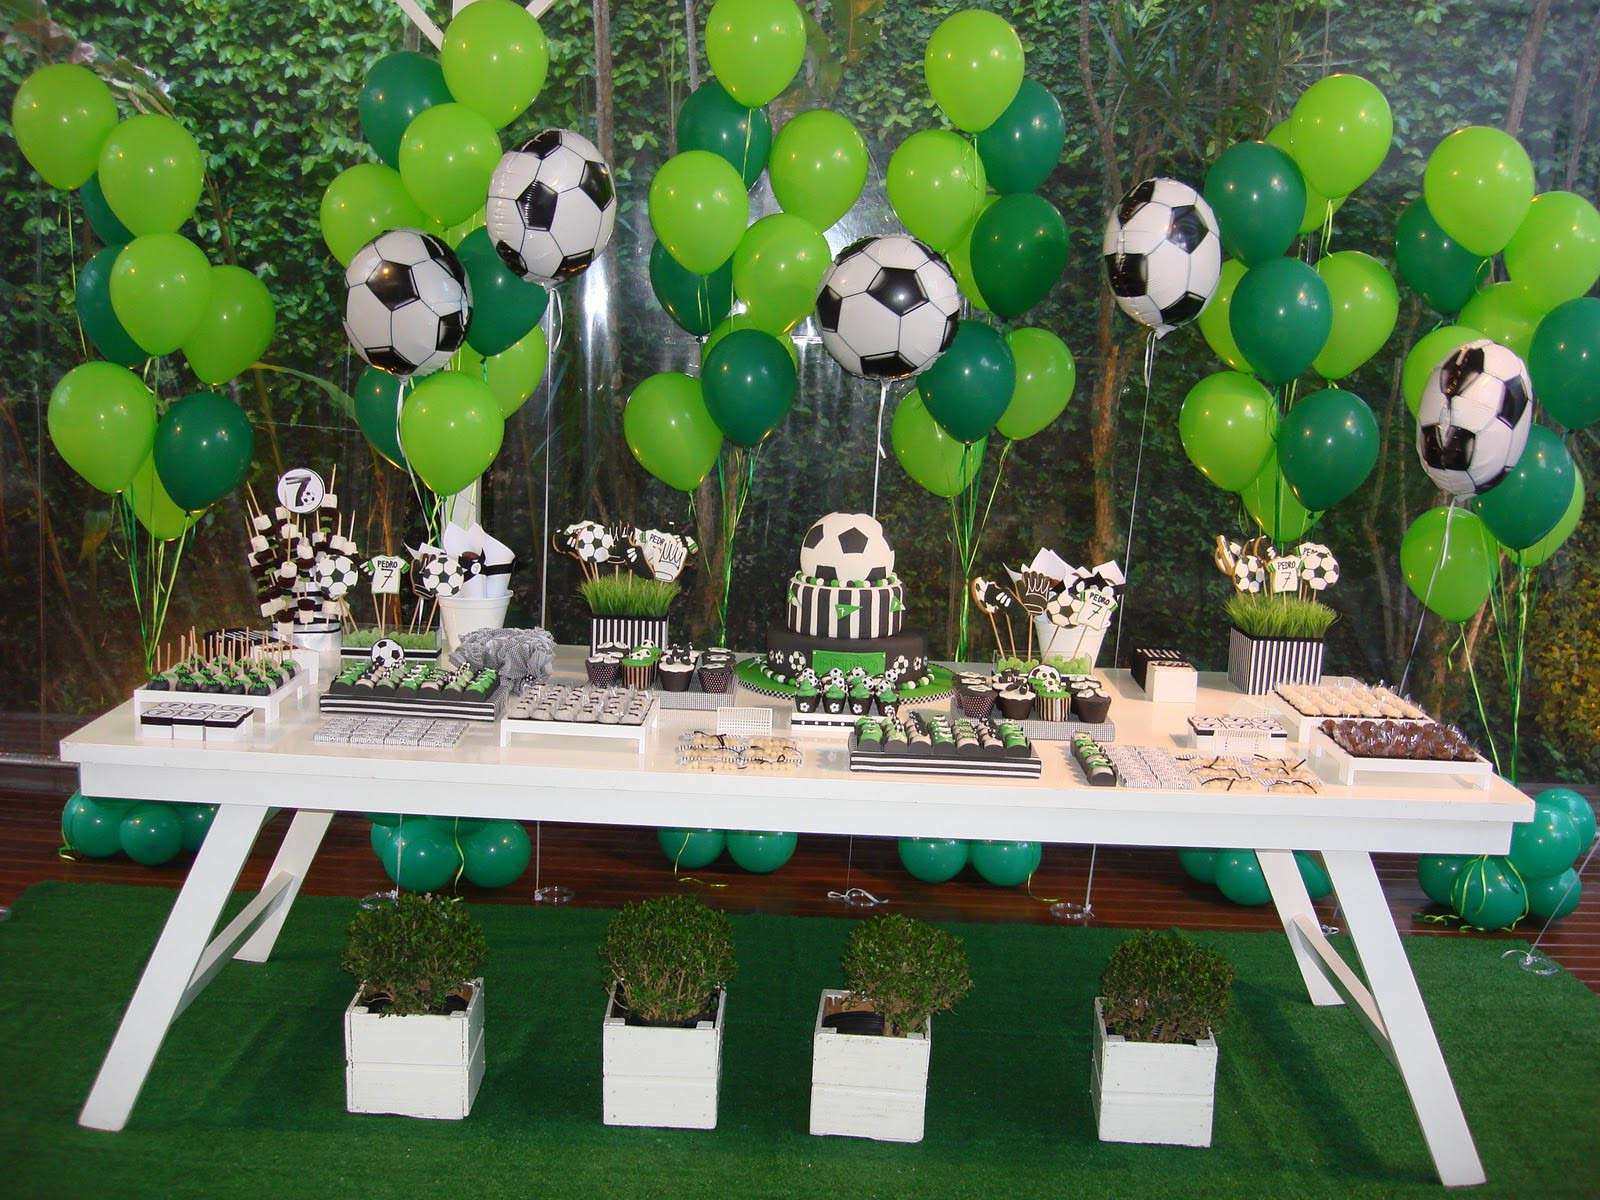 Best ideas about Soccer Theme Birthday Party . Save or Pin Soccer Birthday Party Favor Ideas Now.